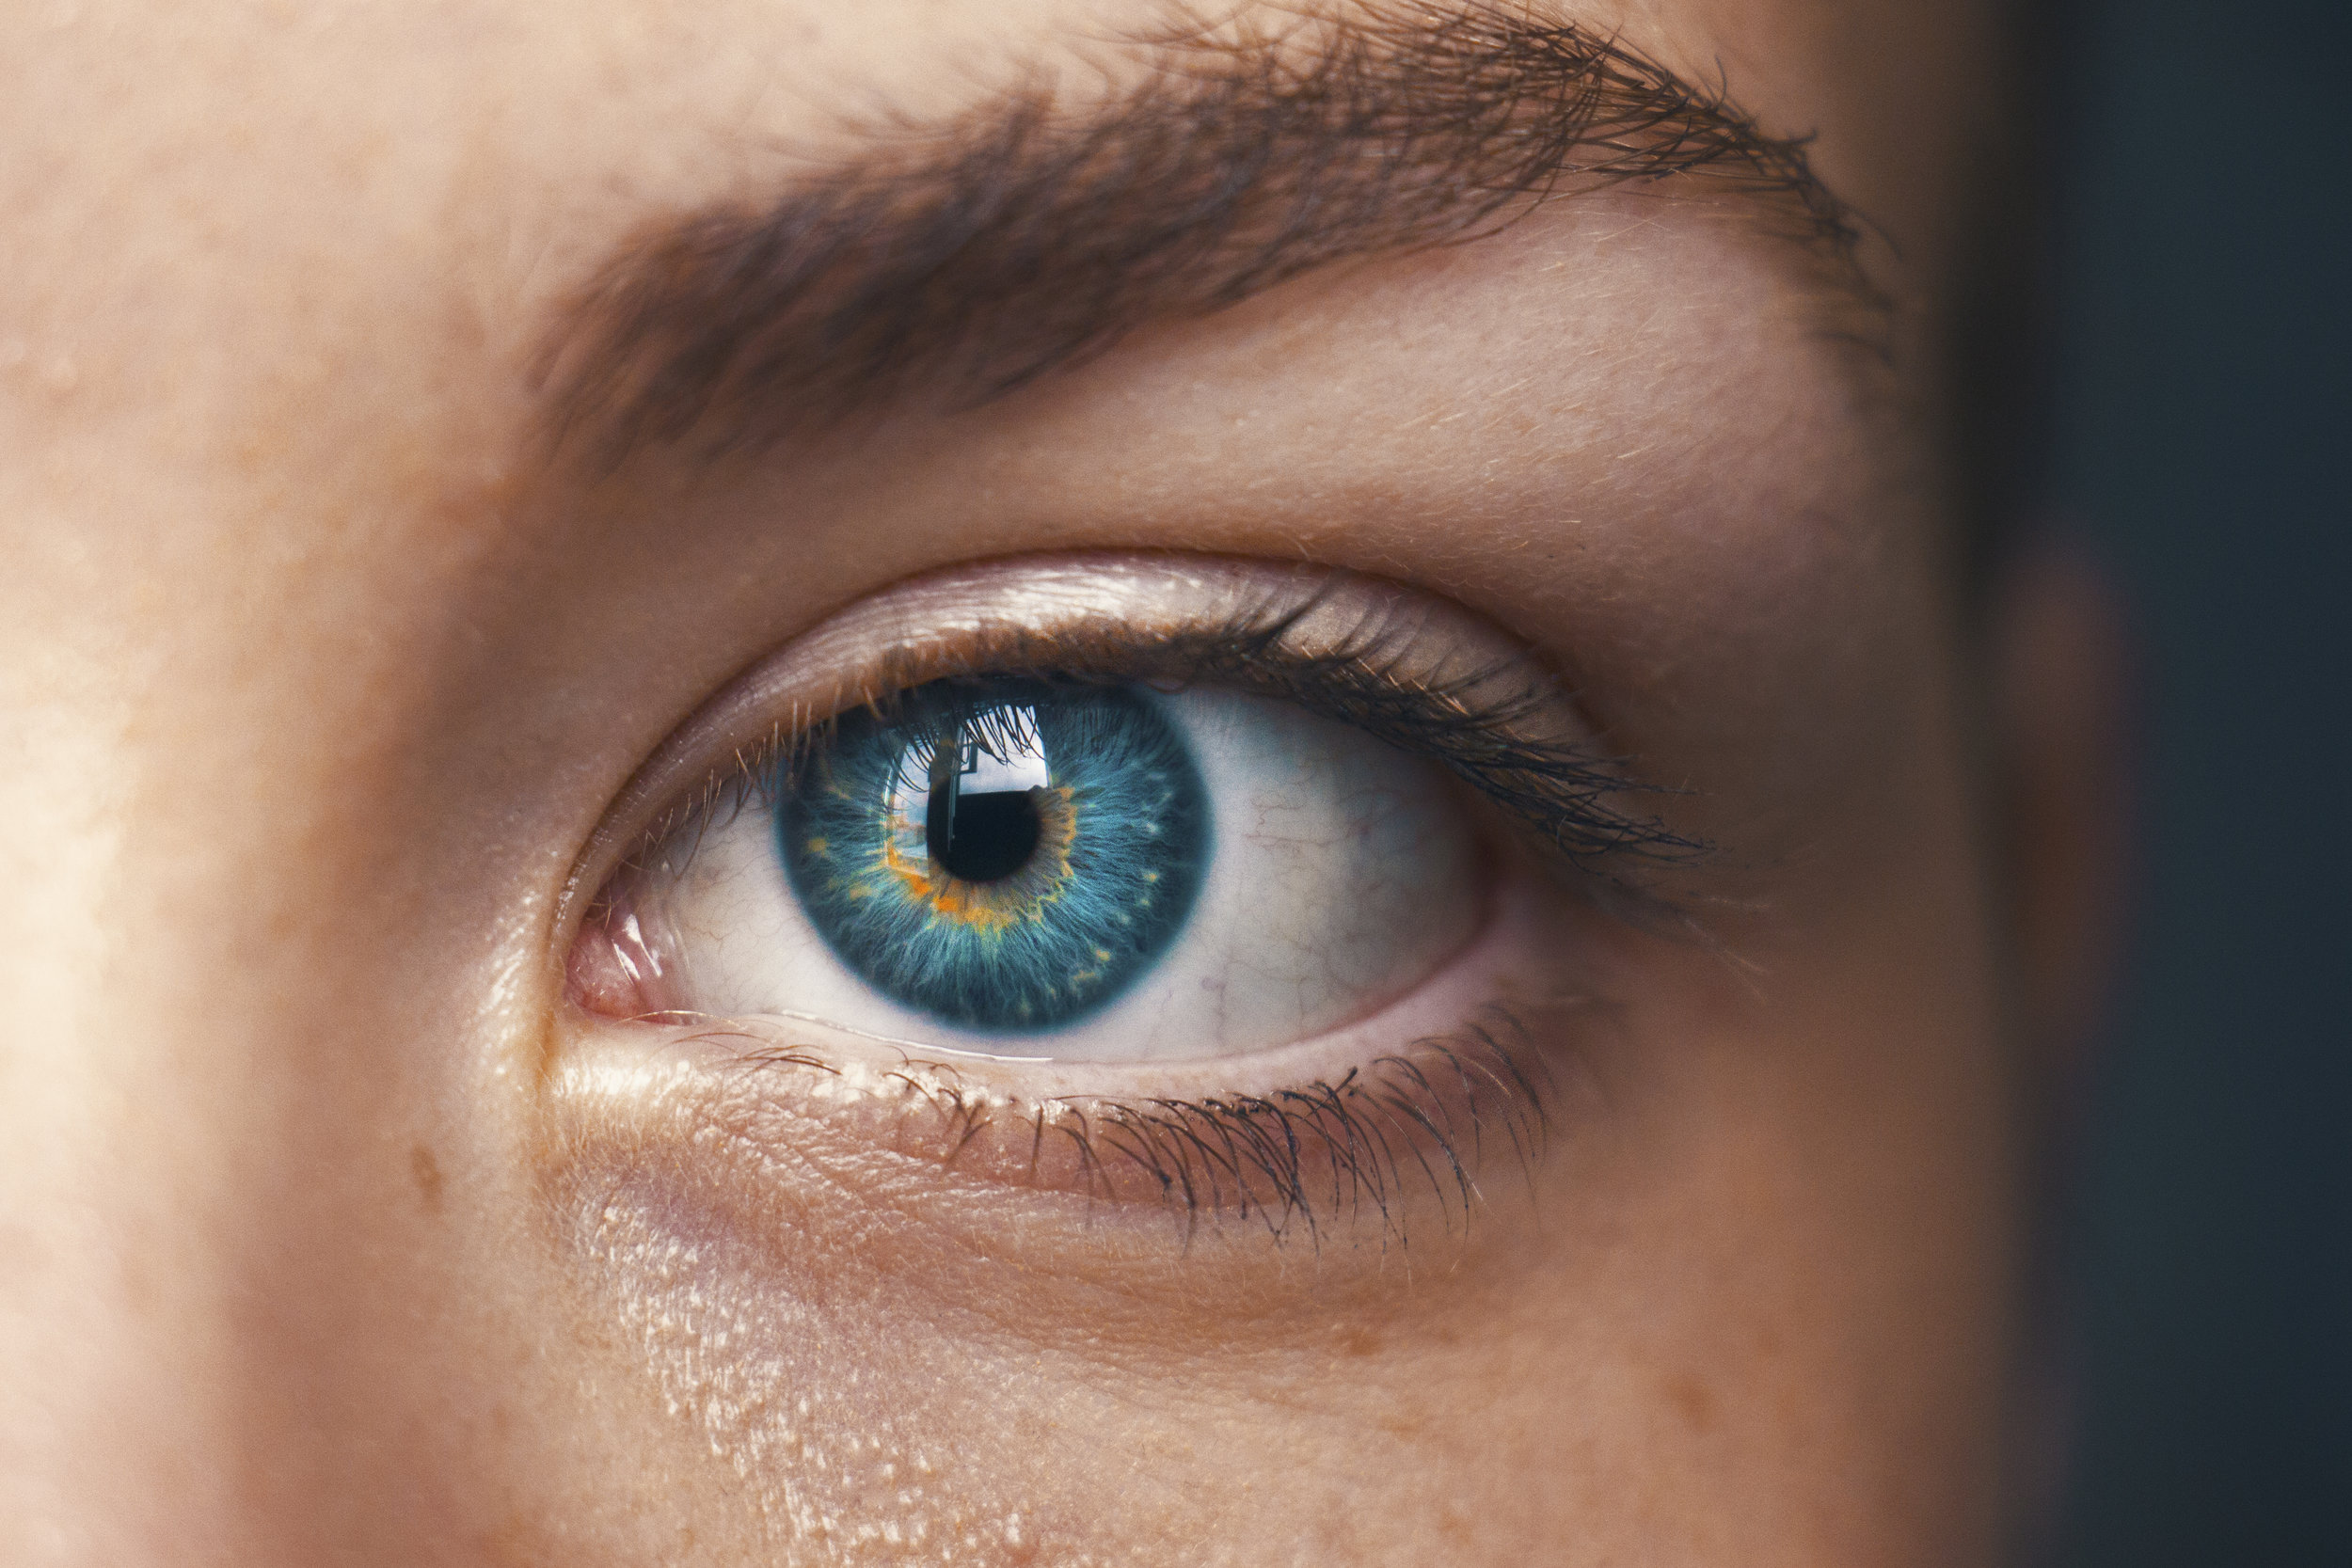 EMDR Therapy. - If you would like to learn more about EMDR therapy please visit www.EMDRIA.org for more details and research about this innovative form of therapy.